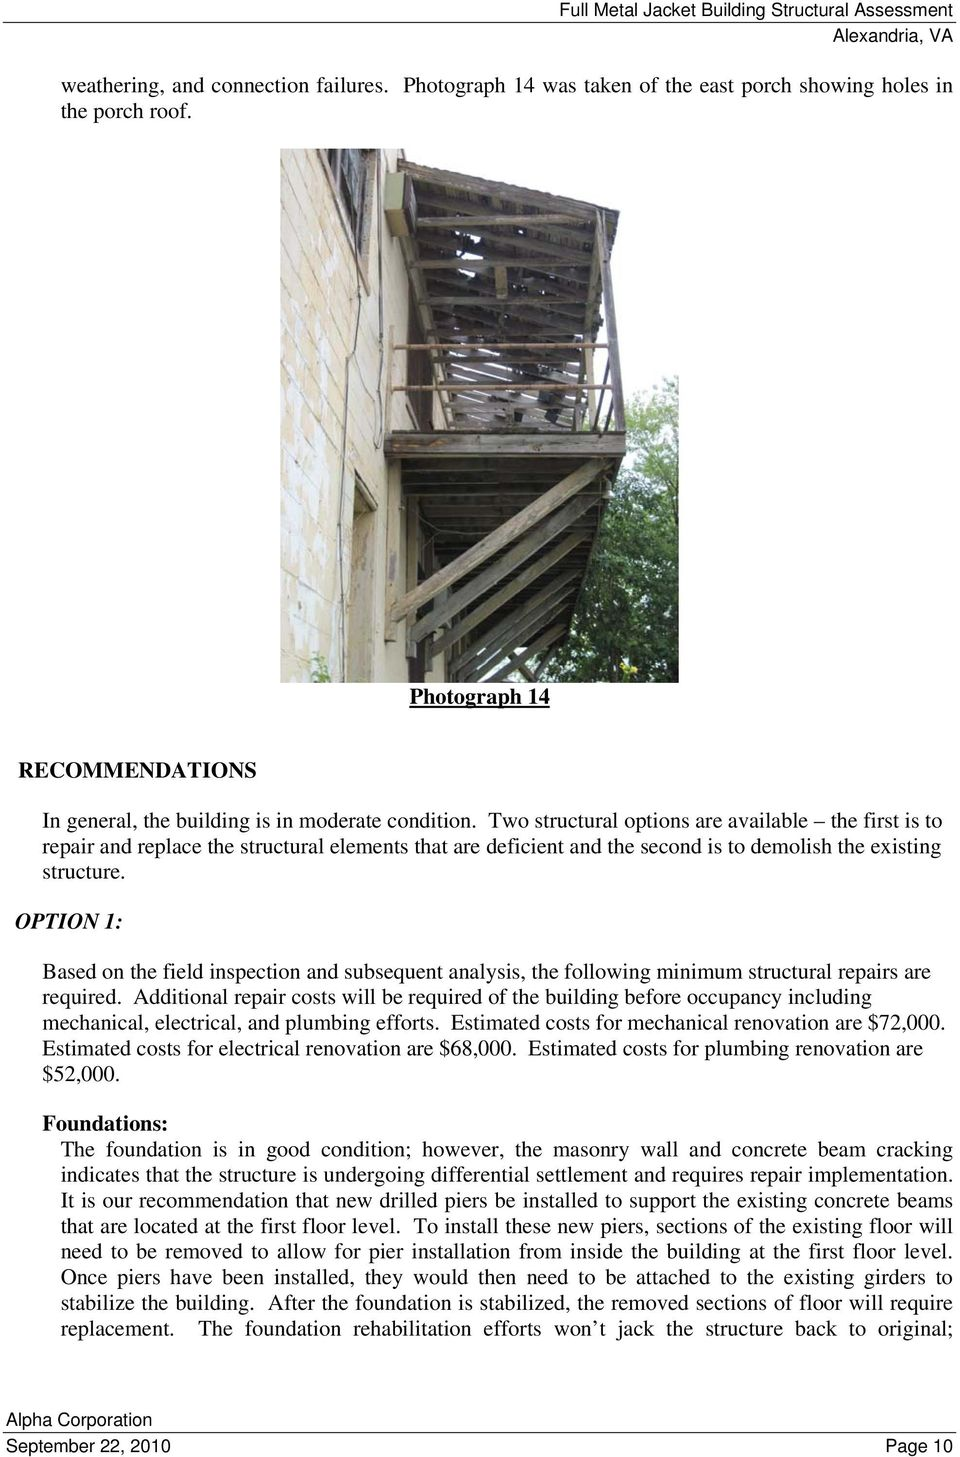 OPTION 1: Based on the field inspection and subsequent analysis, the following minimum structural repairs are required.